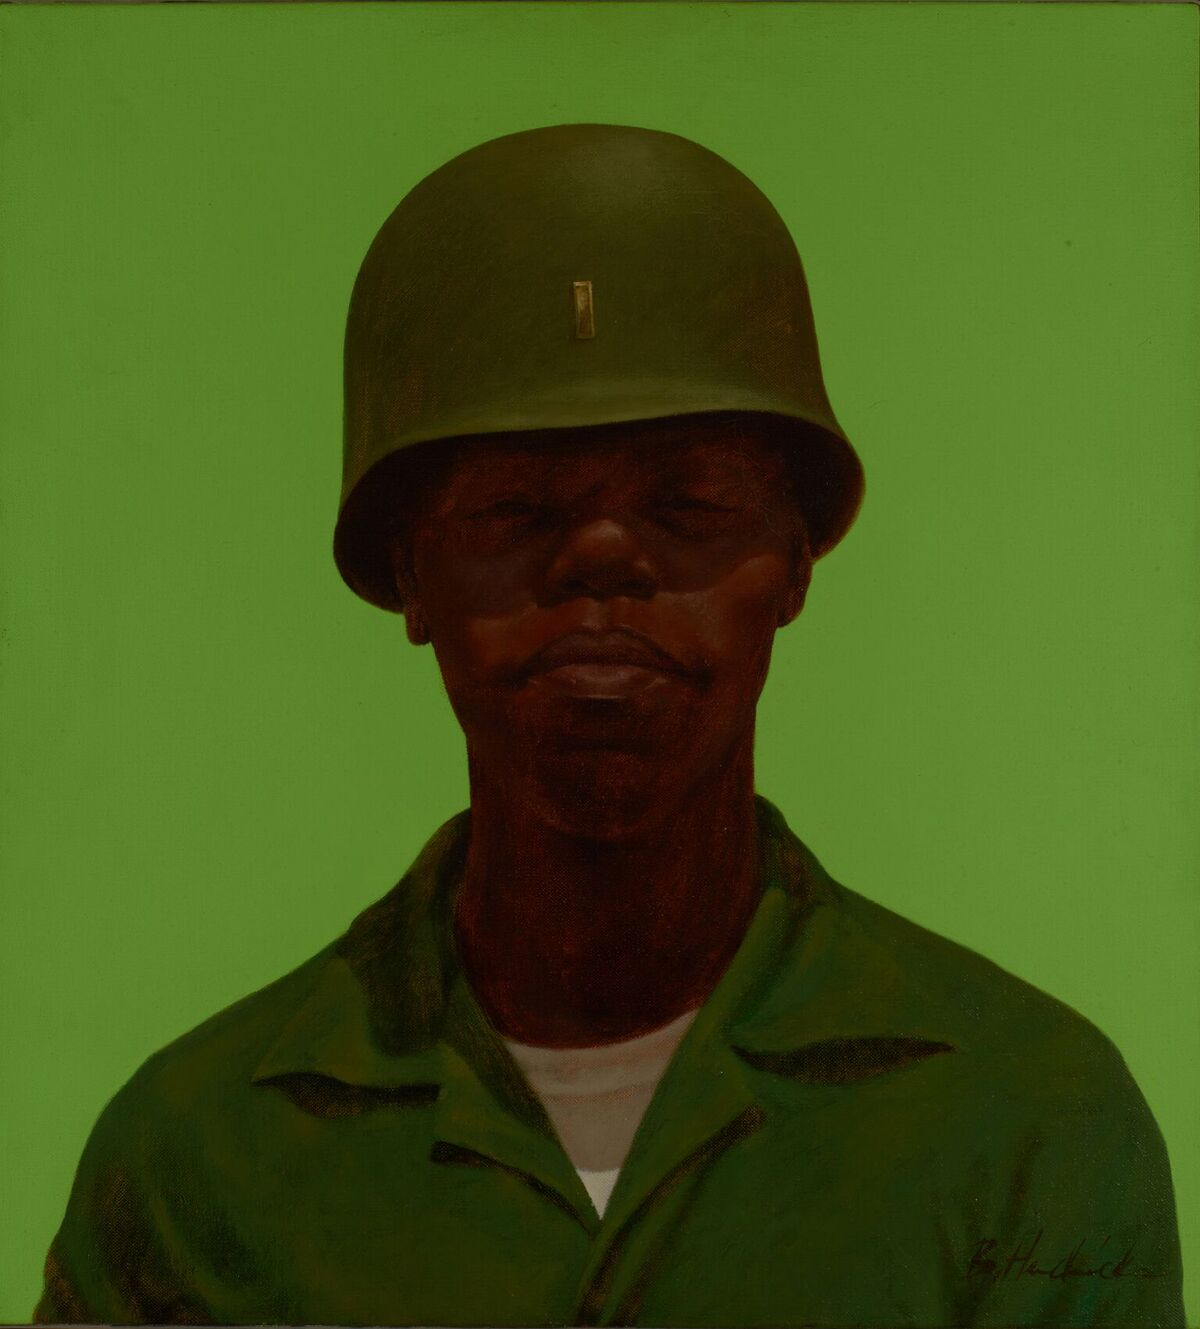 Barkley L. Hendricks, FTA, 1968. Courtesy of Bowdoin College Museum of Art.